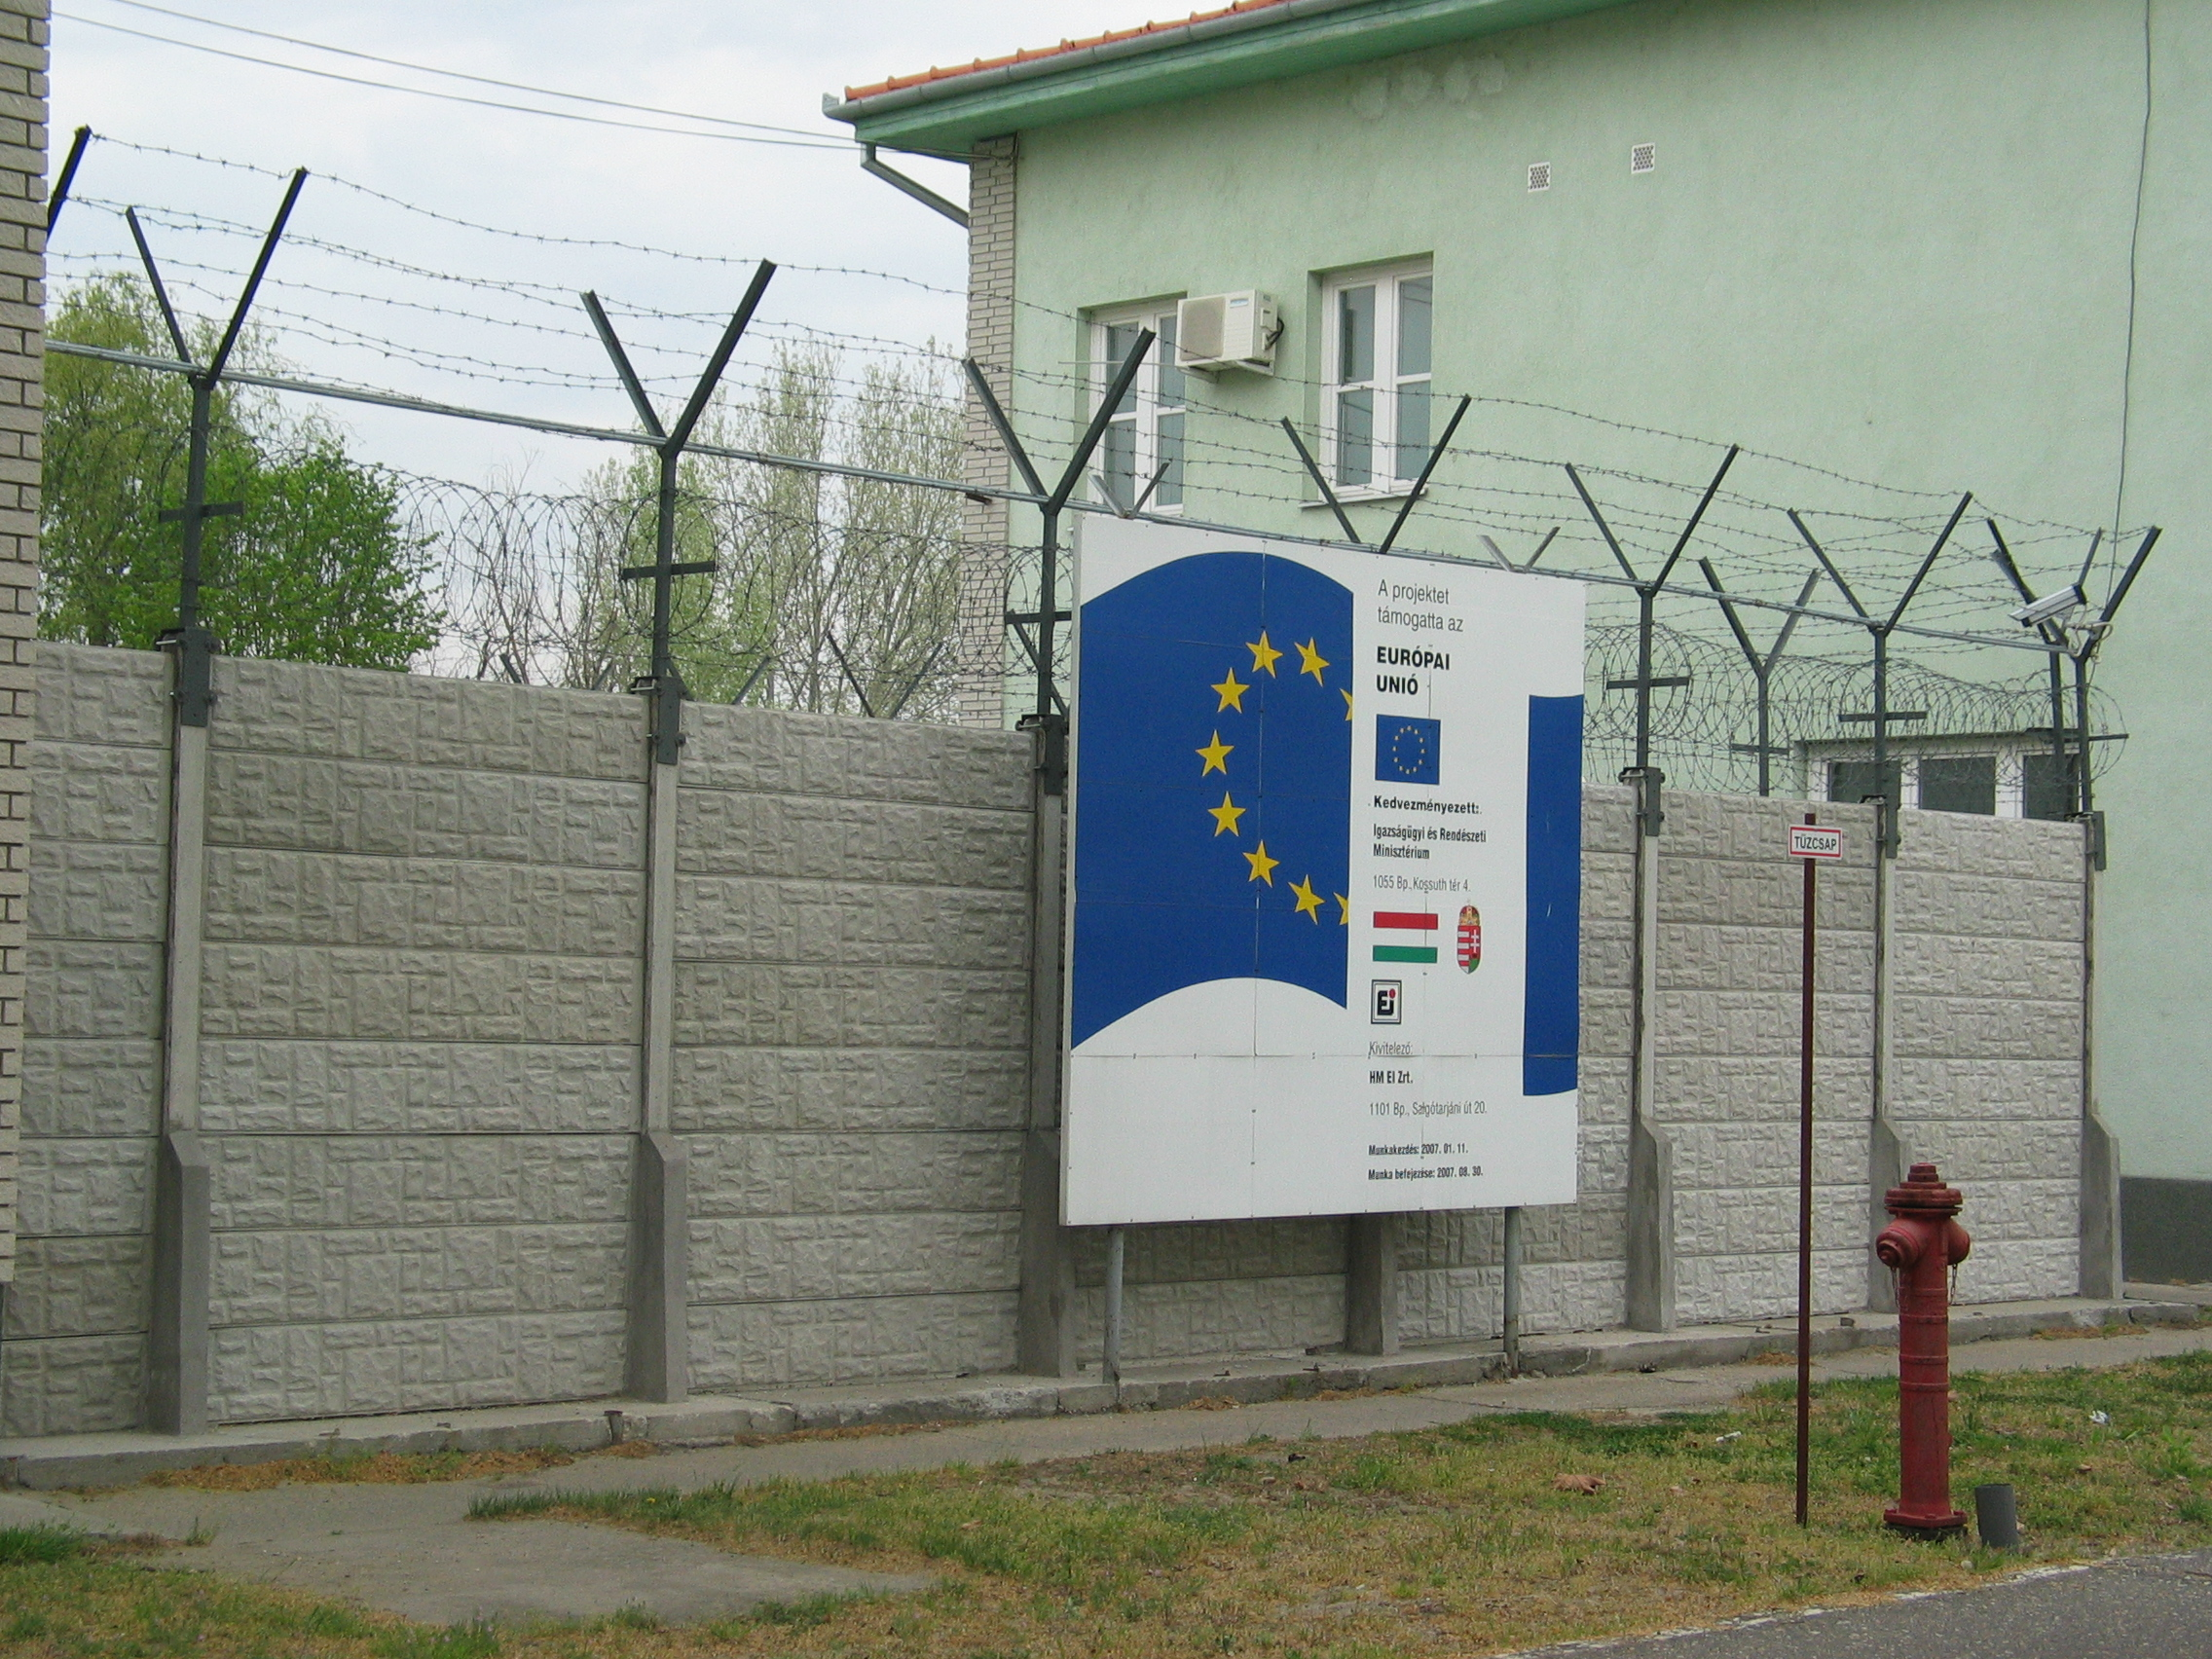 A detention facility for irregular migrants in Hungary